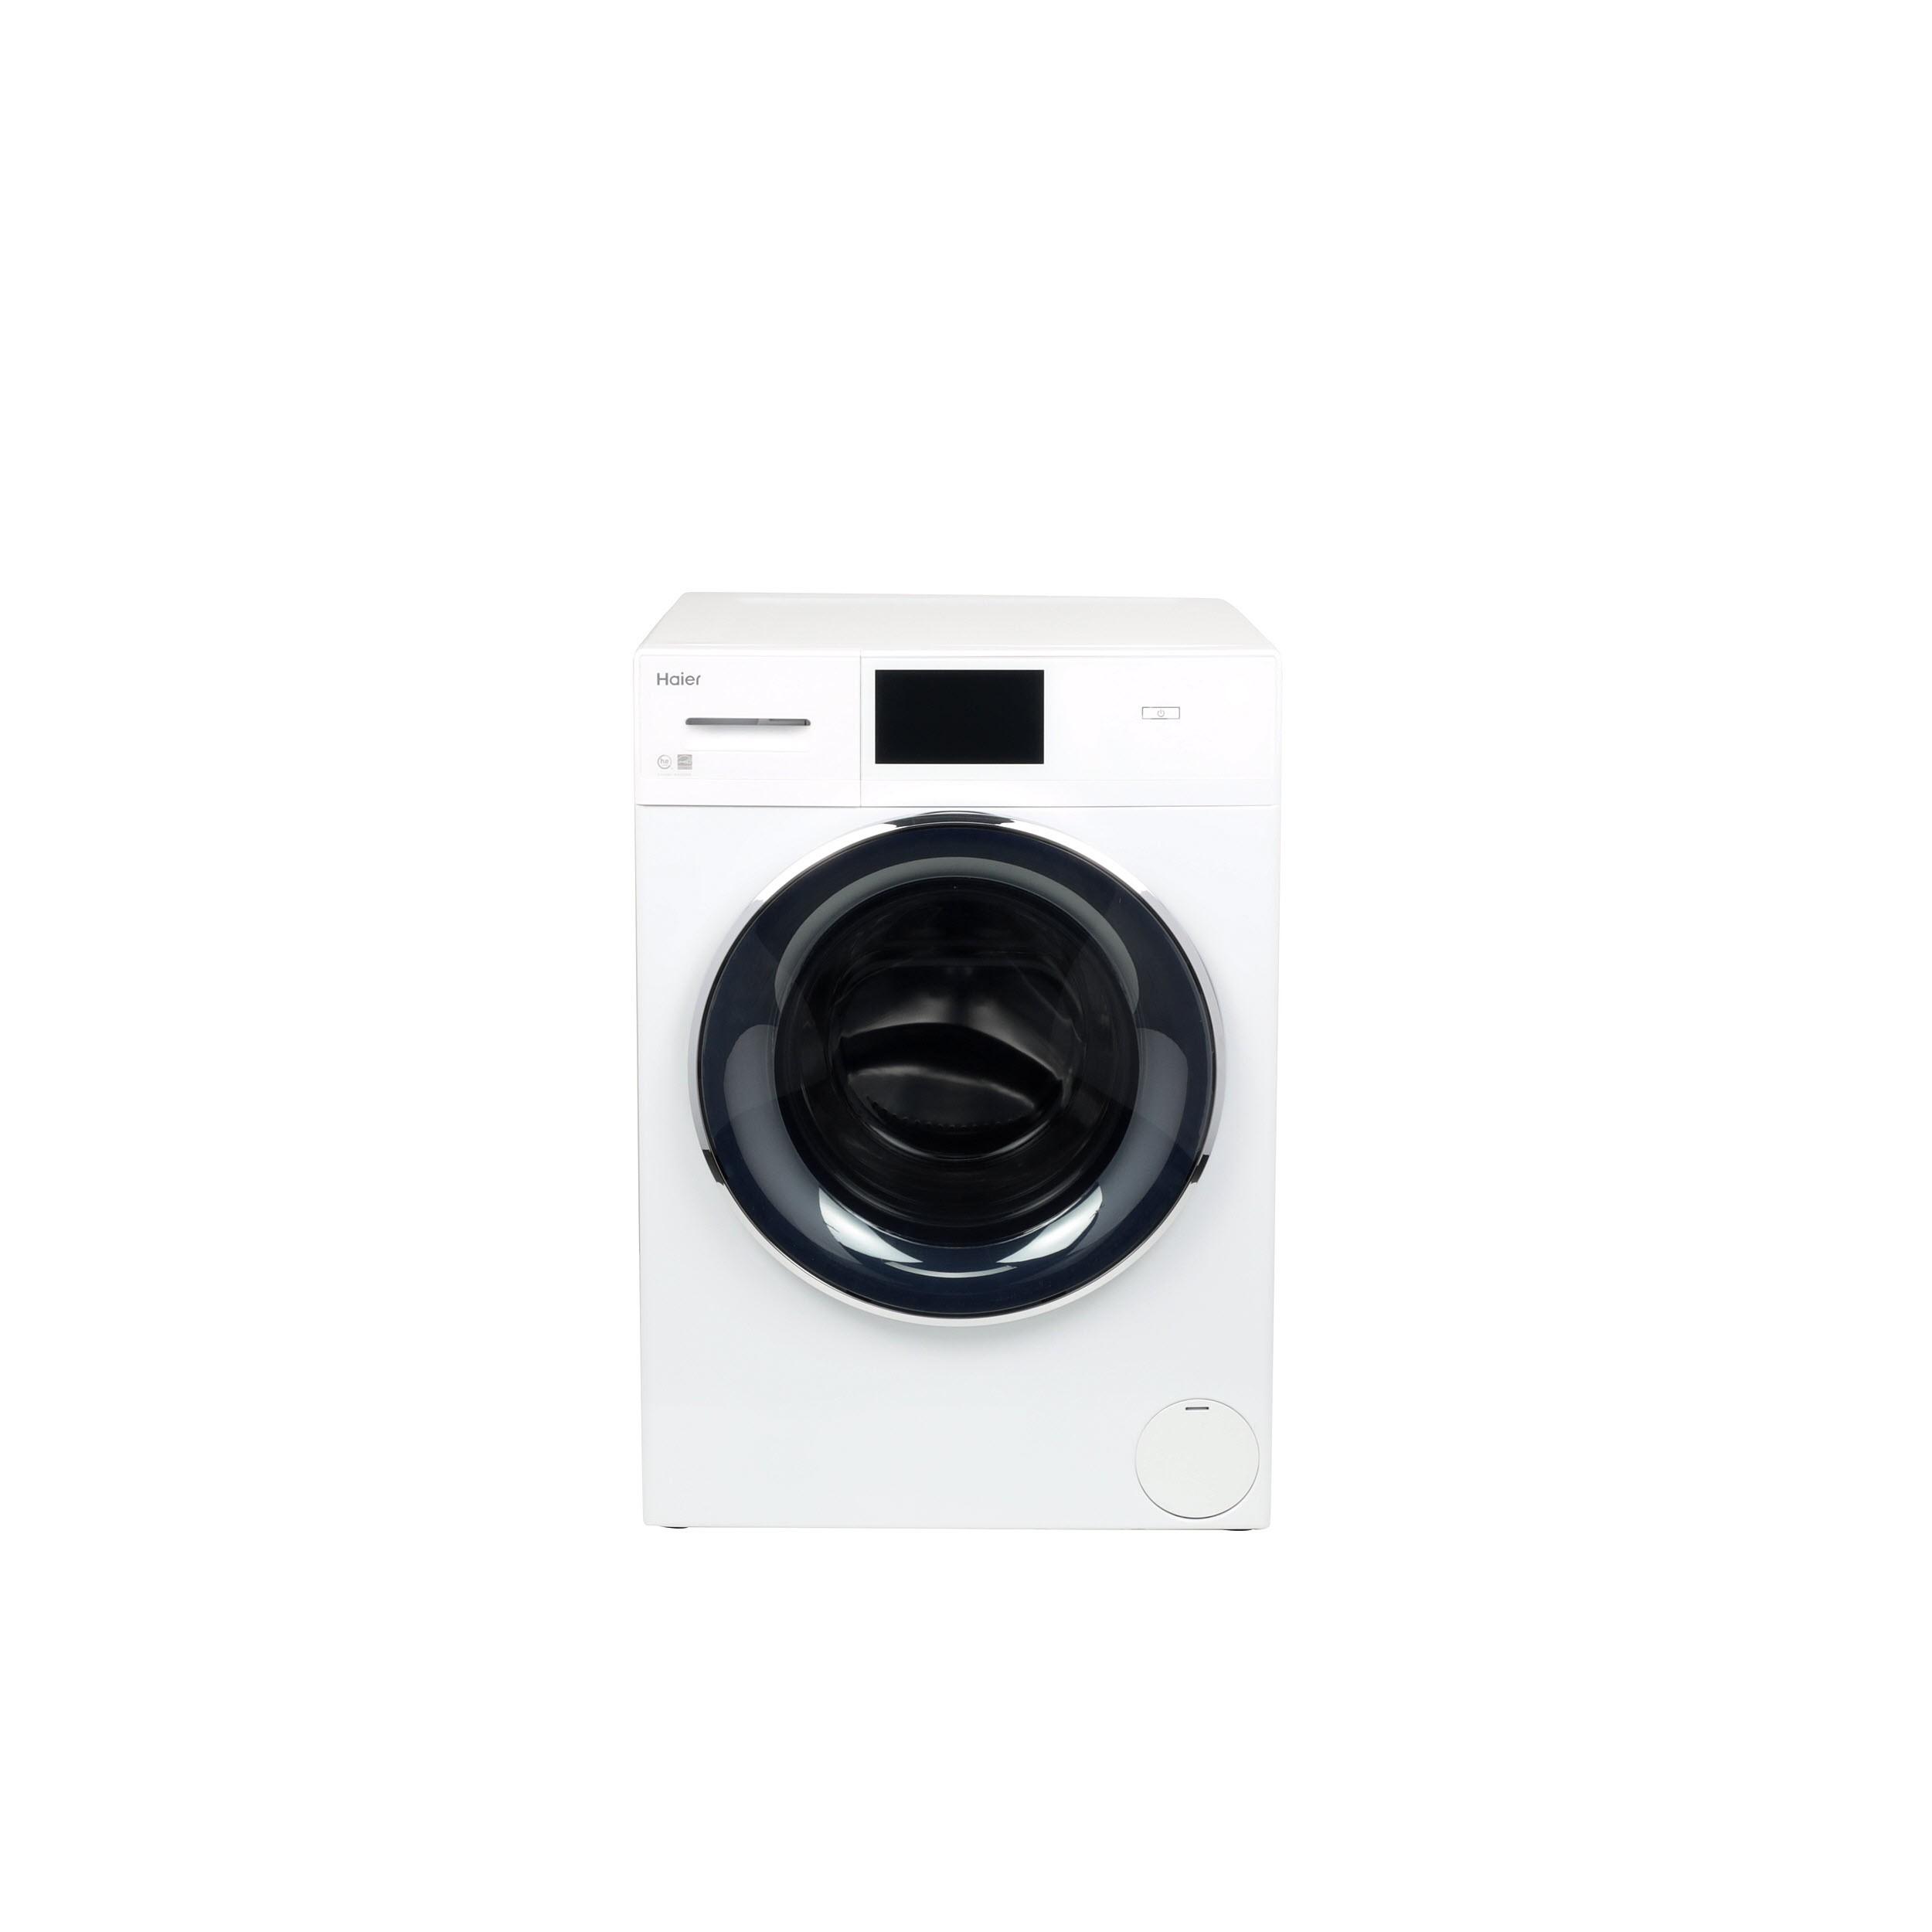 Haier 2.4 Cu. Ft. Frontload Washer